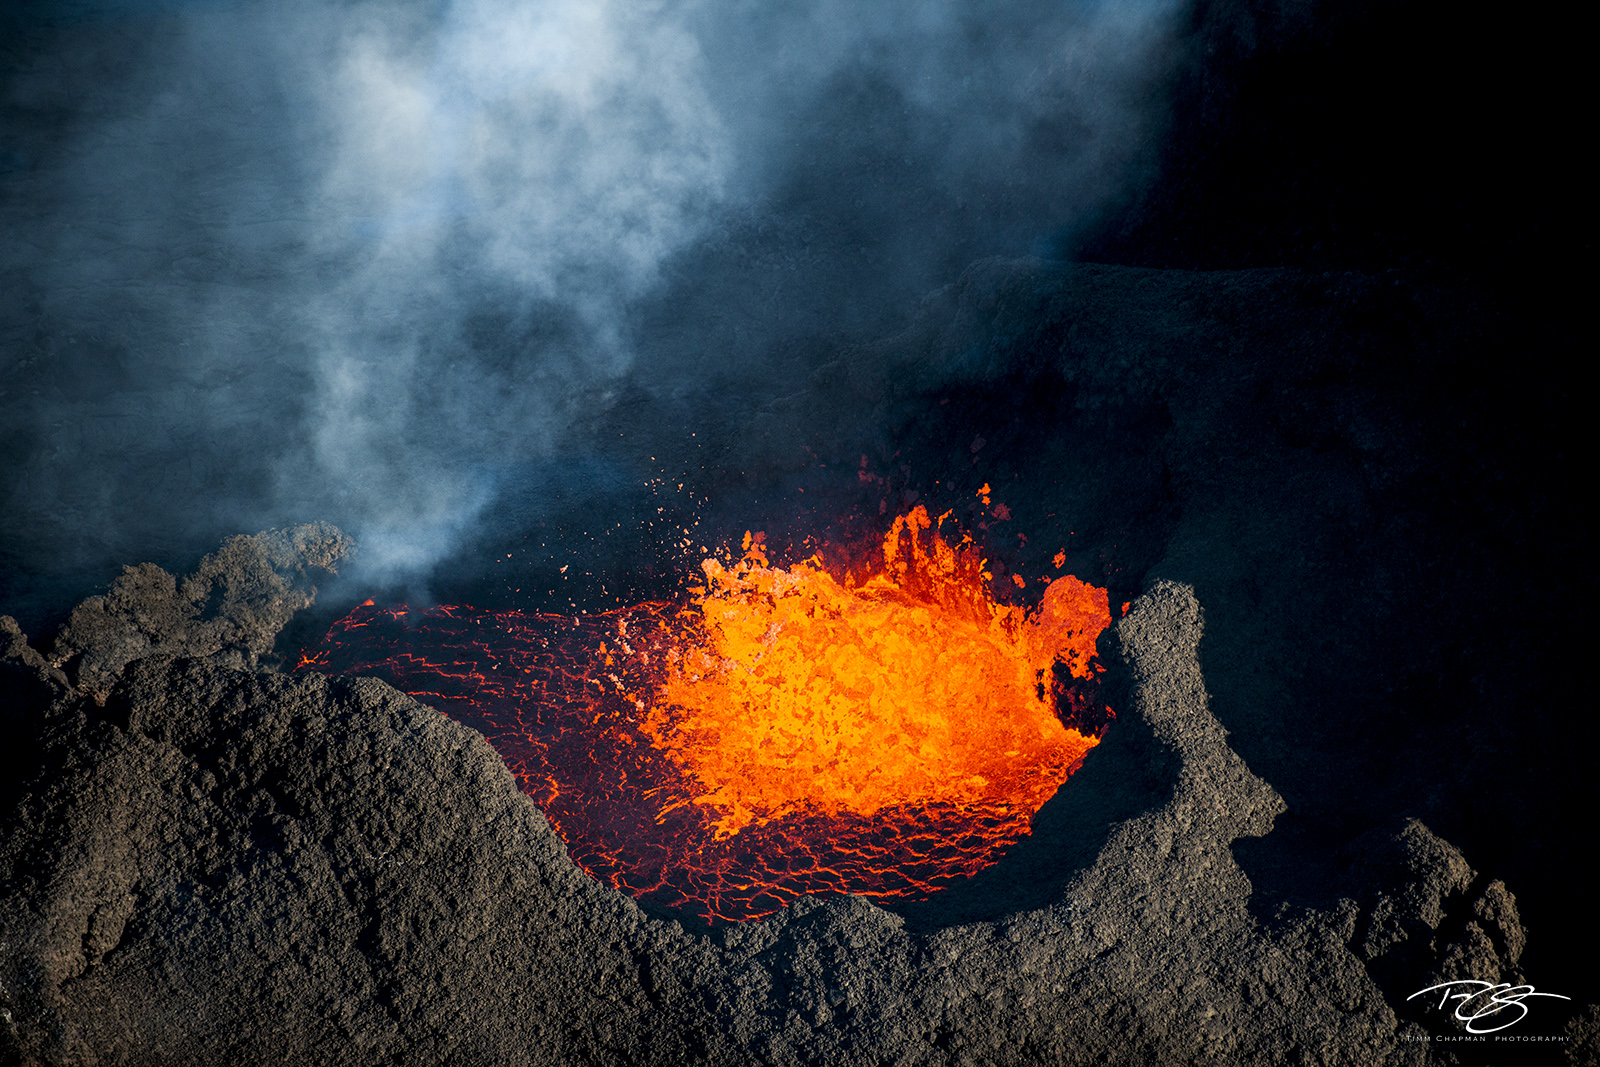 Iceland, volcano, eruption, lava, molten, bardarbunga, the secret life of walter mitty, game of thrones, photo